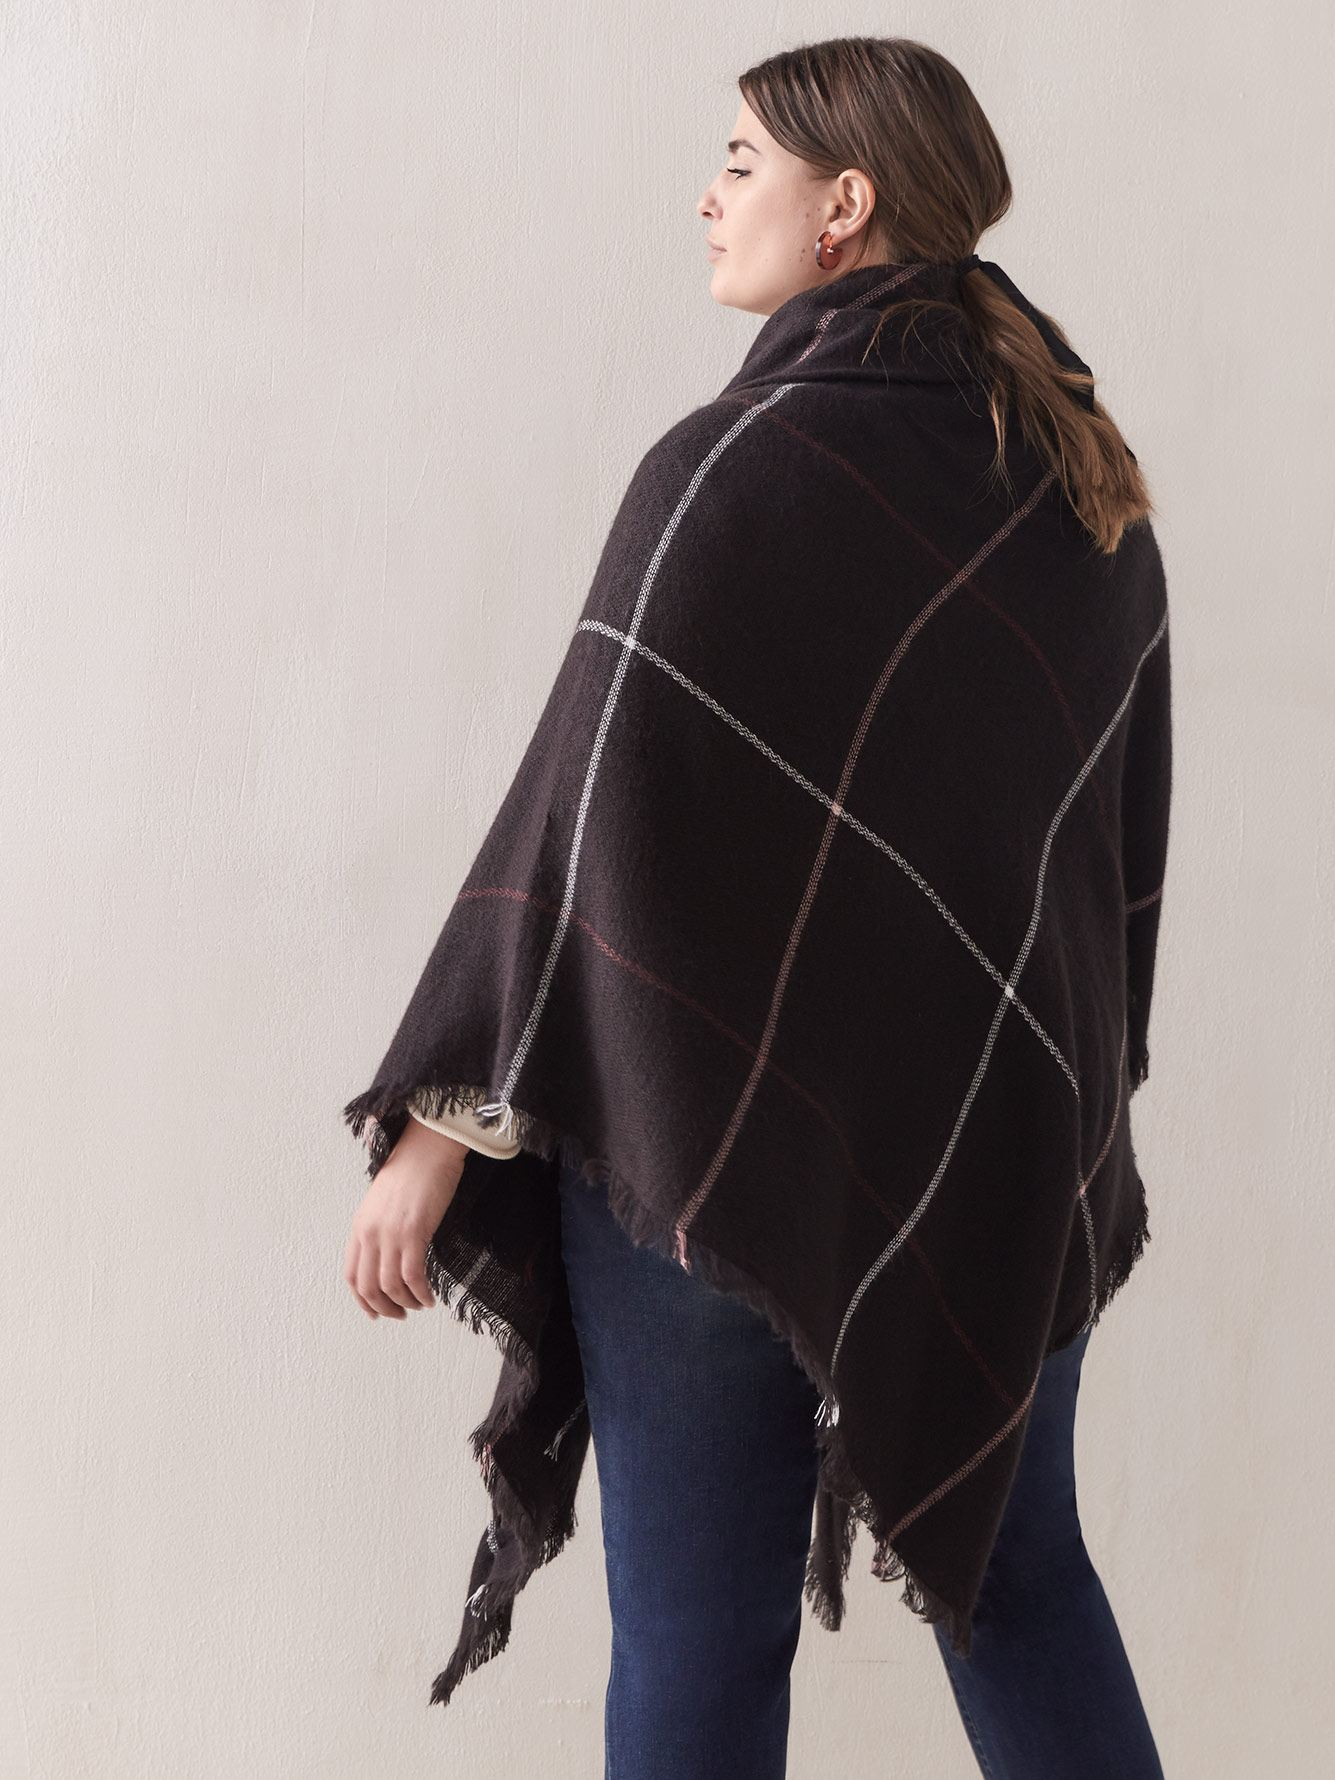 Plaid Cape with Front Closure - Addition Elle